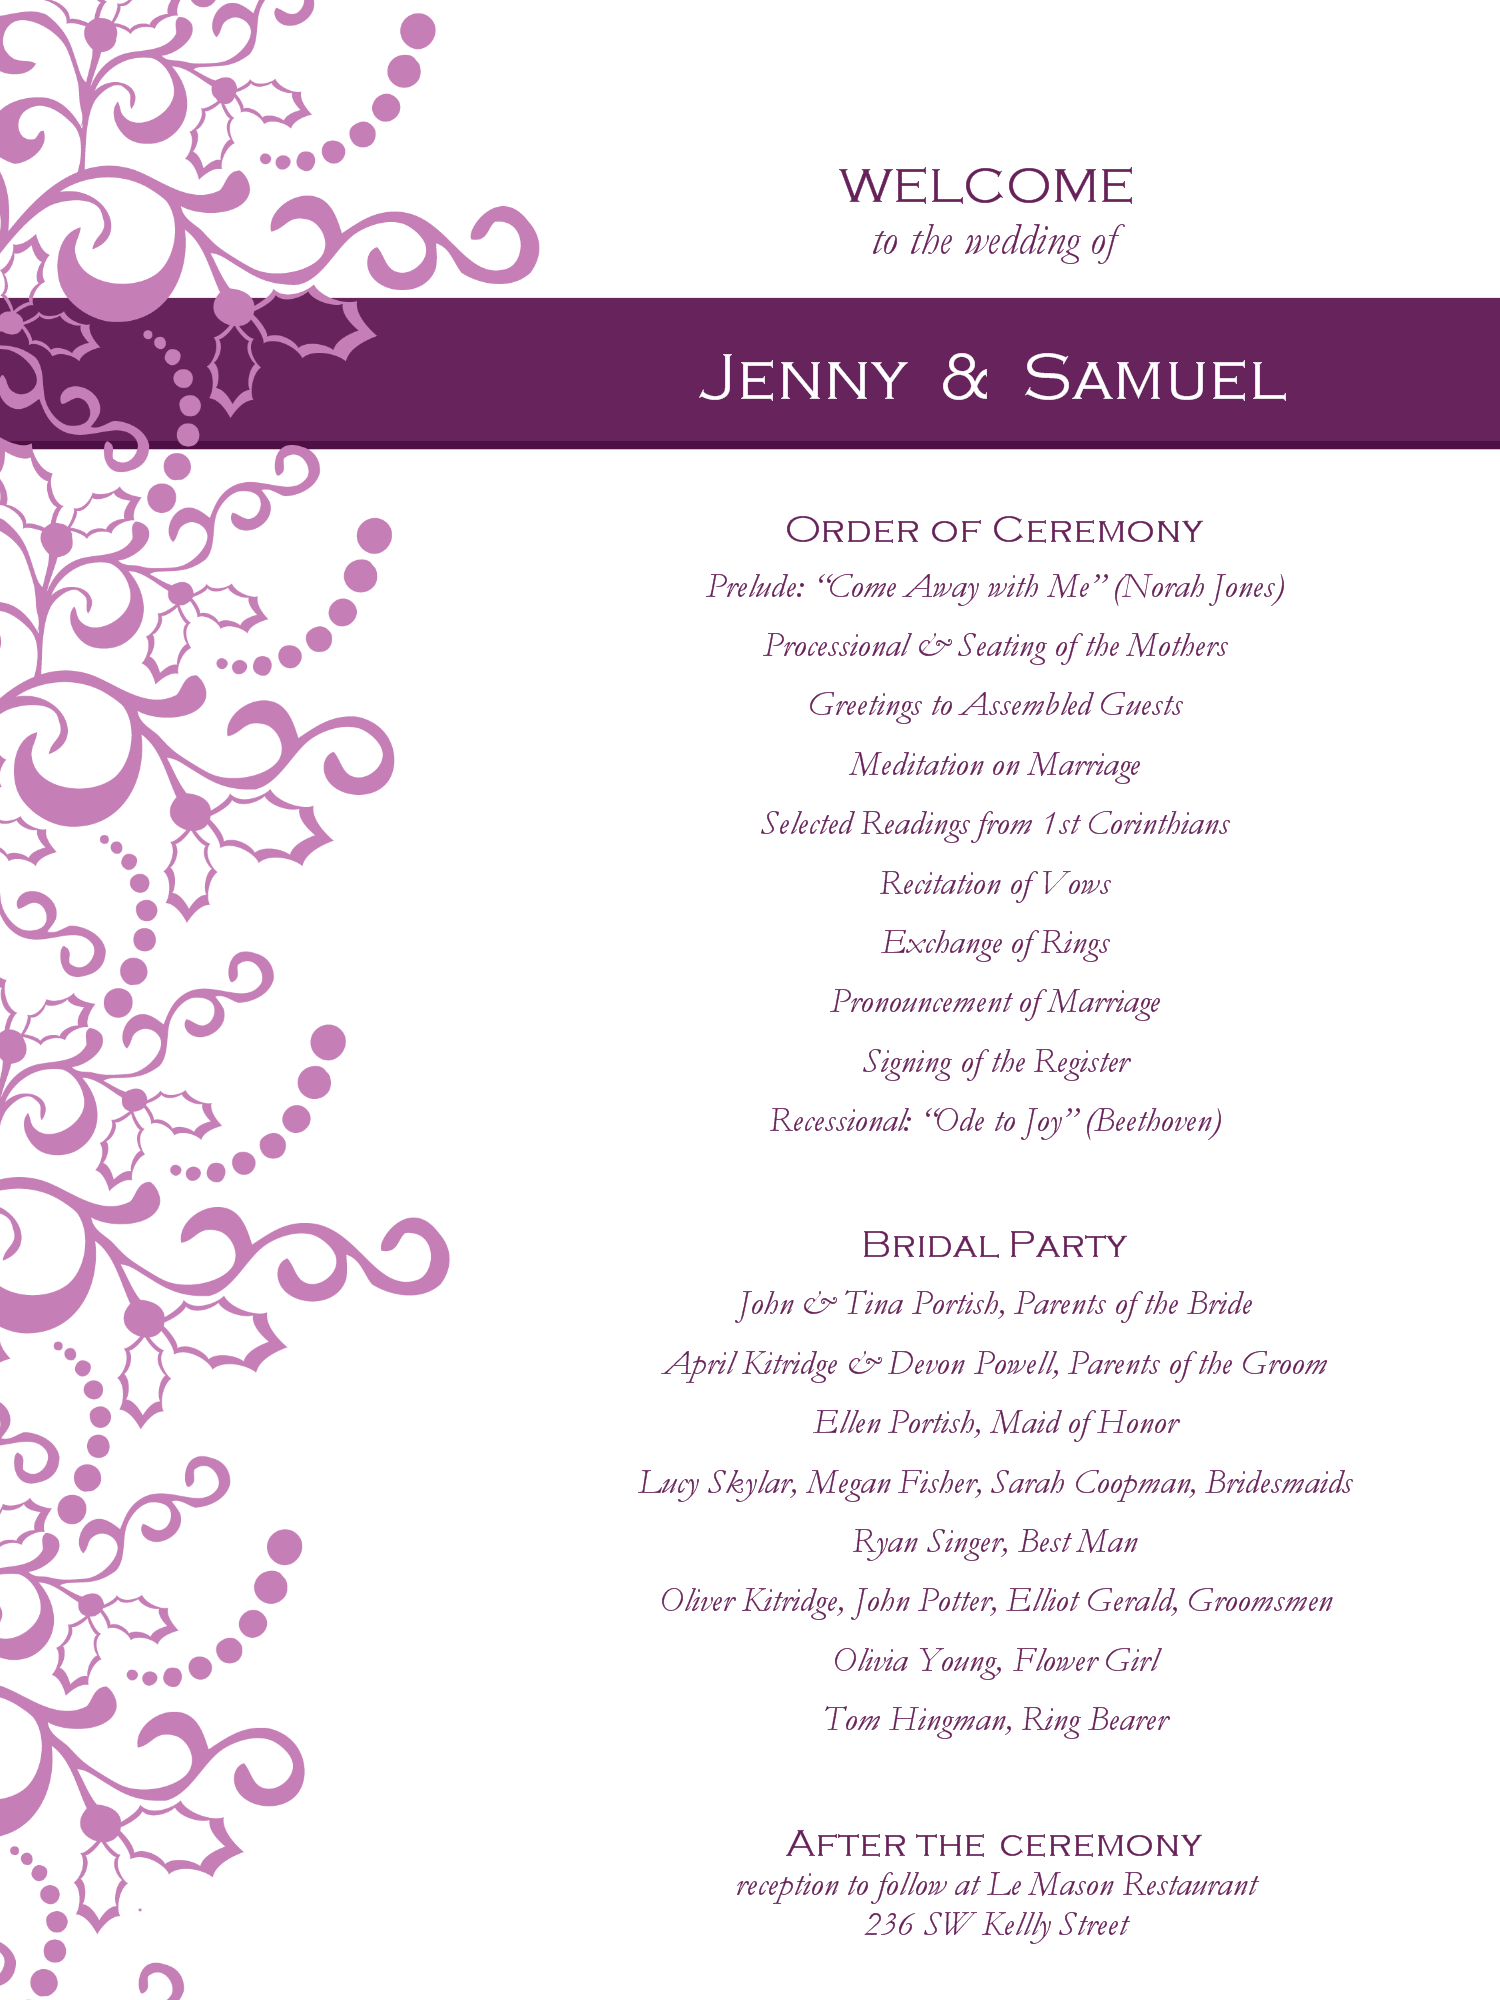 wedding program template instantly edit your wording wedding program templates weddingclipart com